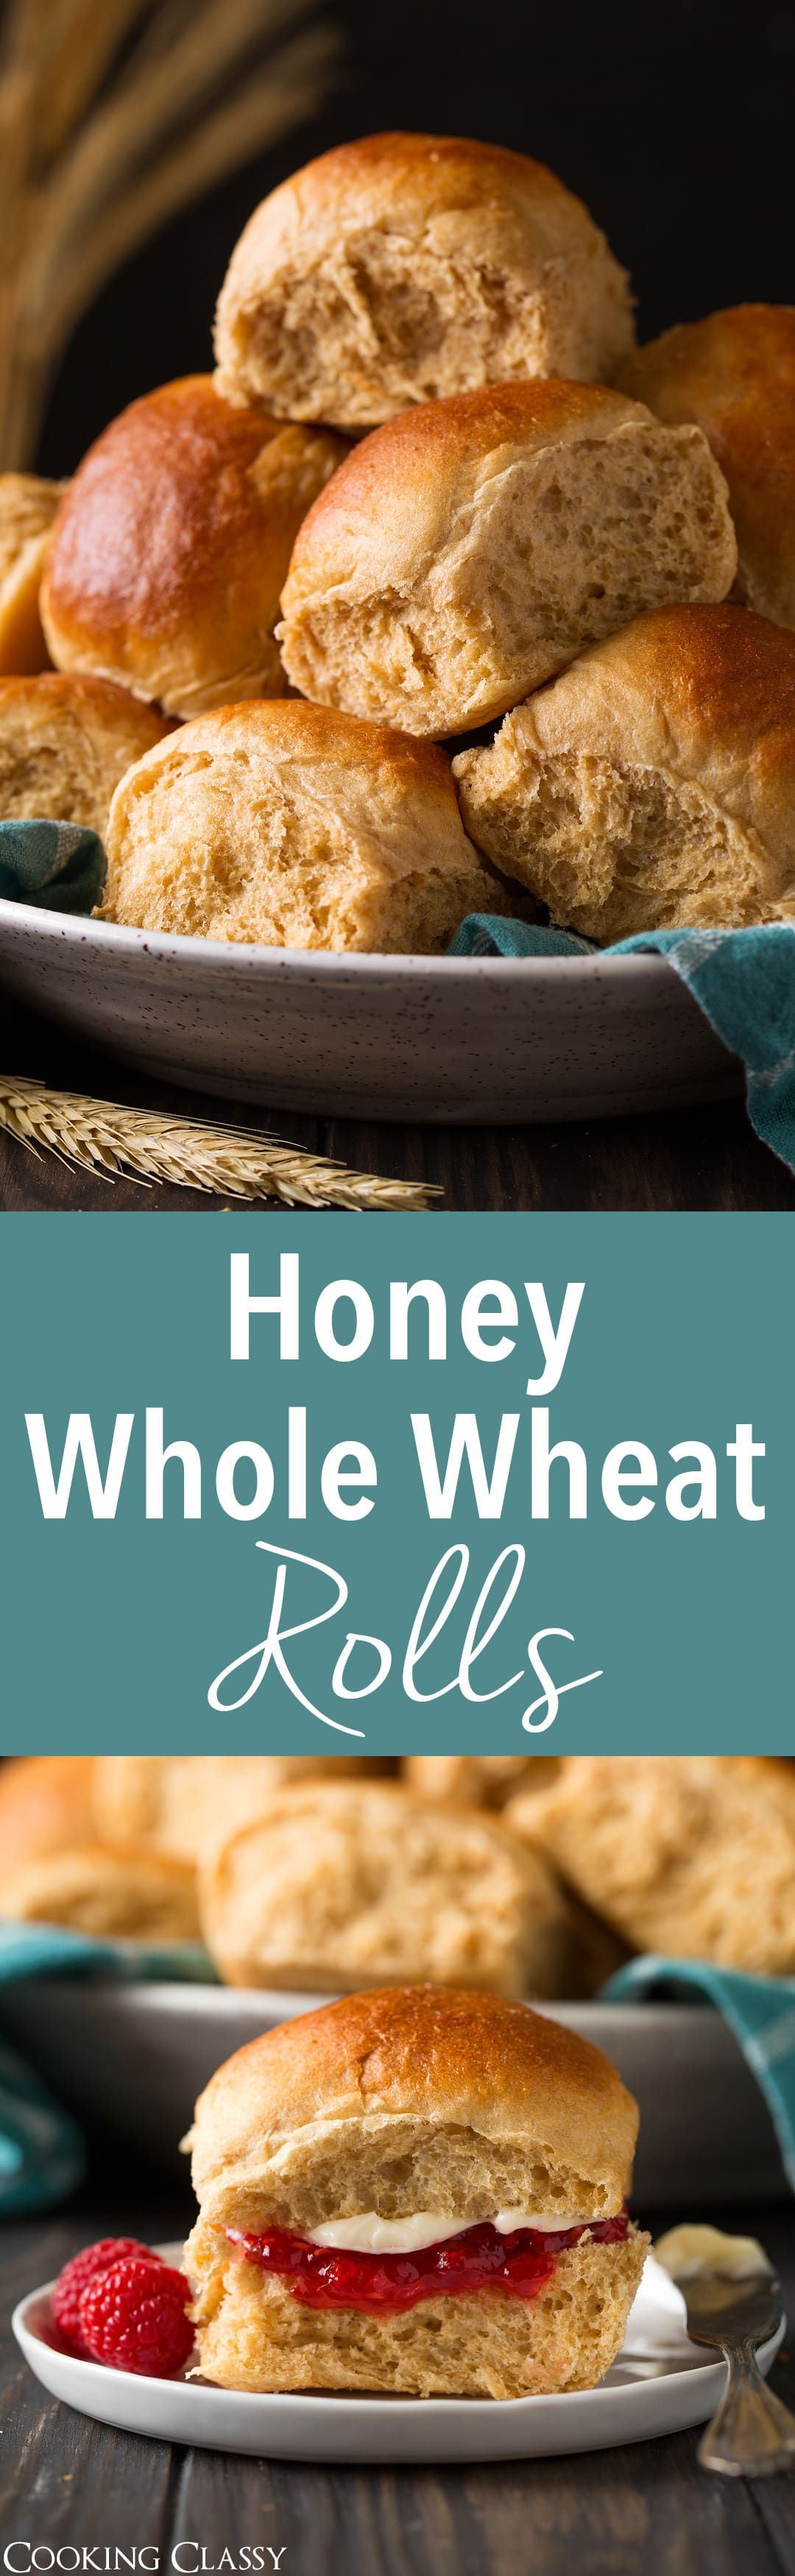 Honey Whole Wheat Rolls - Soft and fluffy rolls made from 100% whole wheat flour. Delicious with homemade freezer jam and a generous slathering of butter.